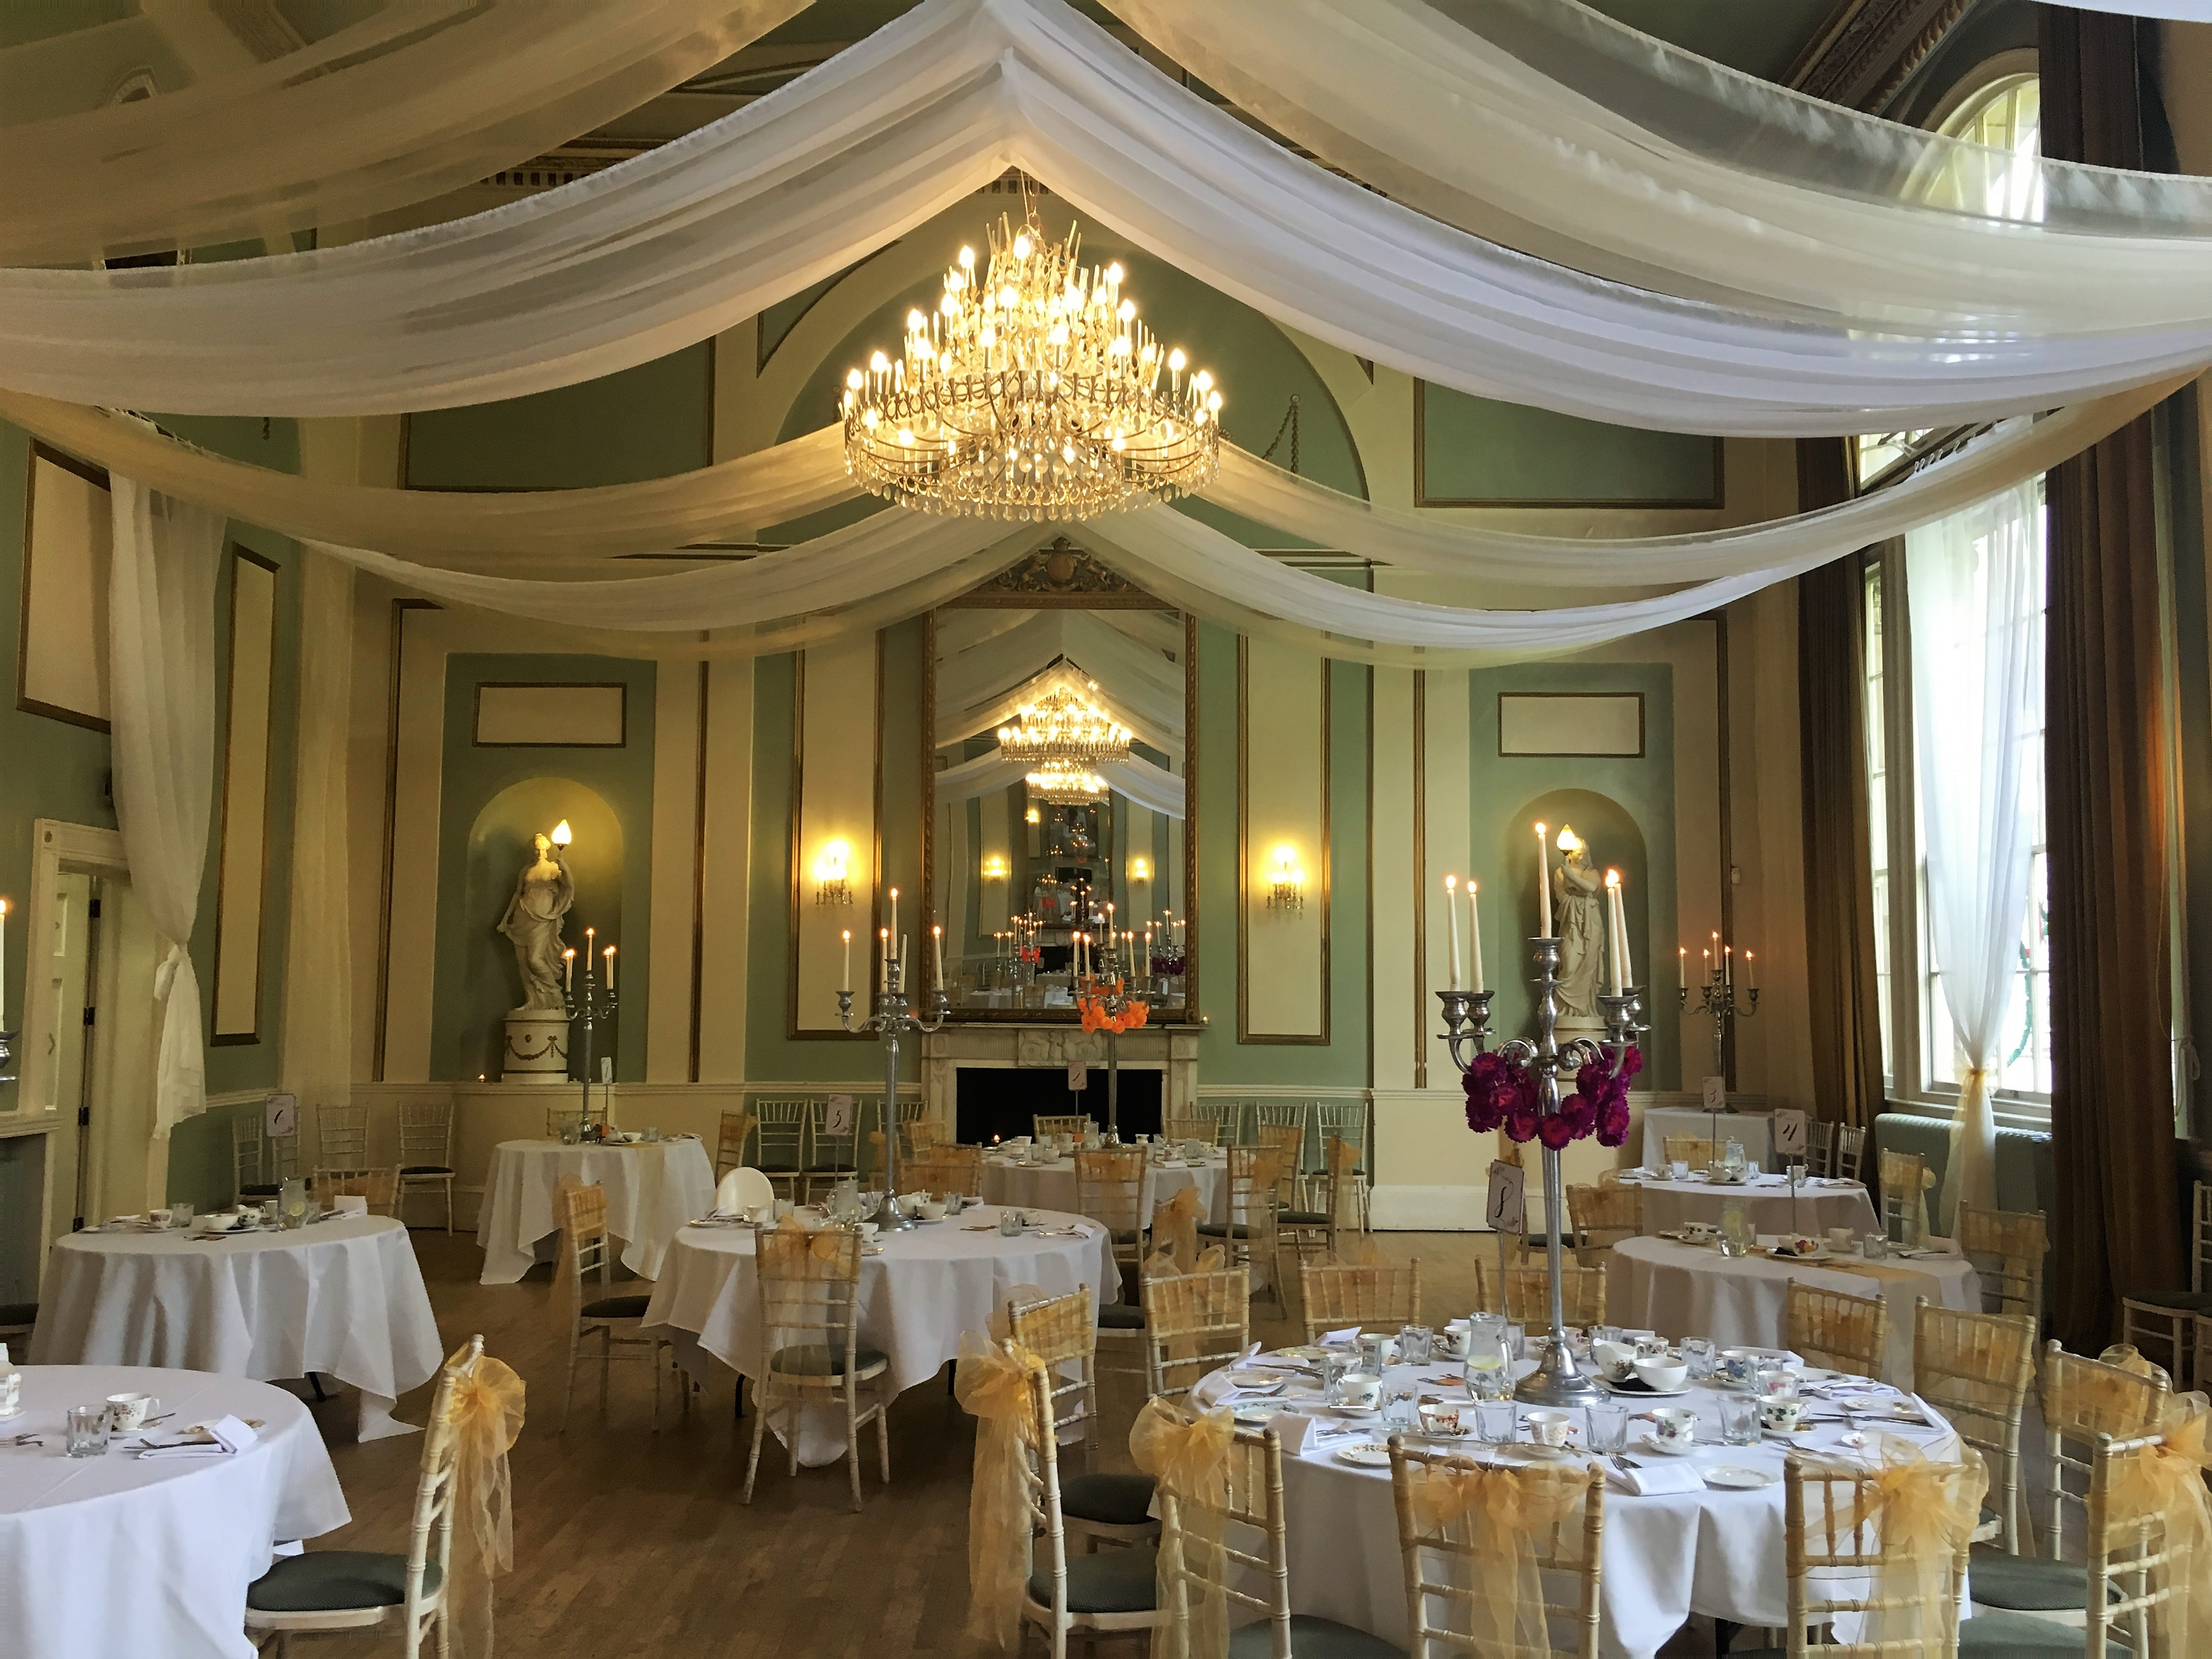 Indian Afternoon Tea at The City Rooms Ballroom